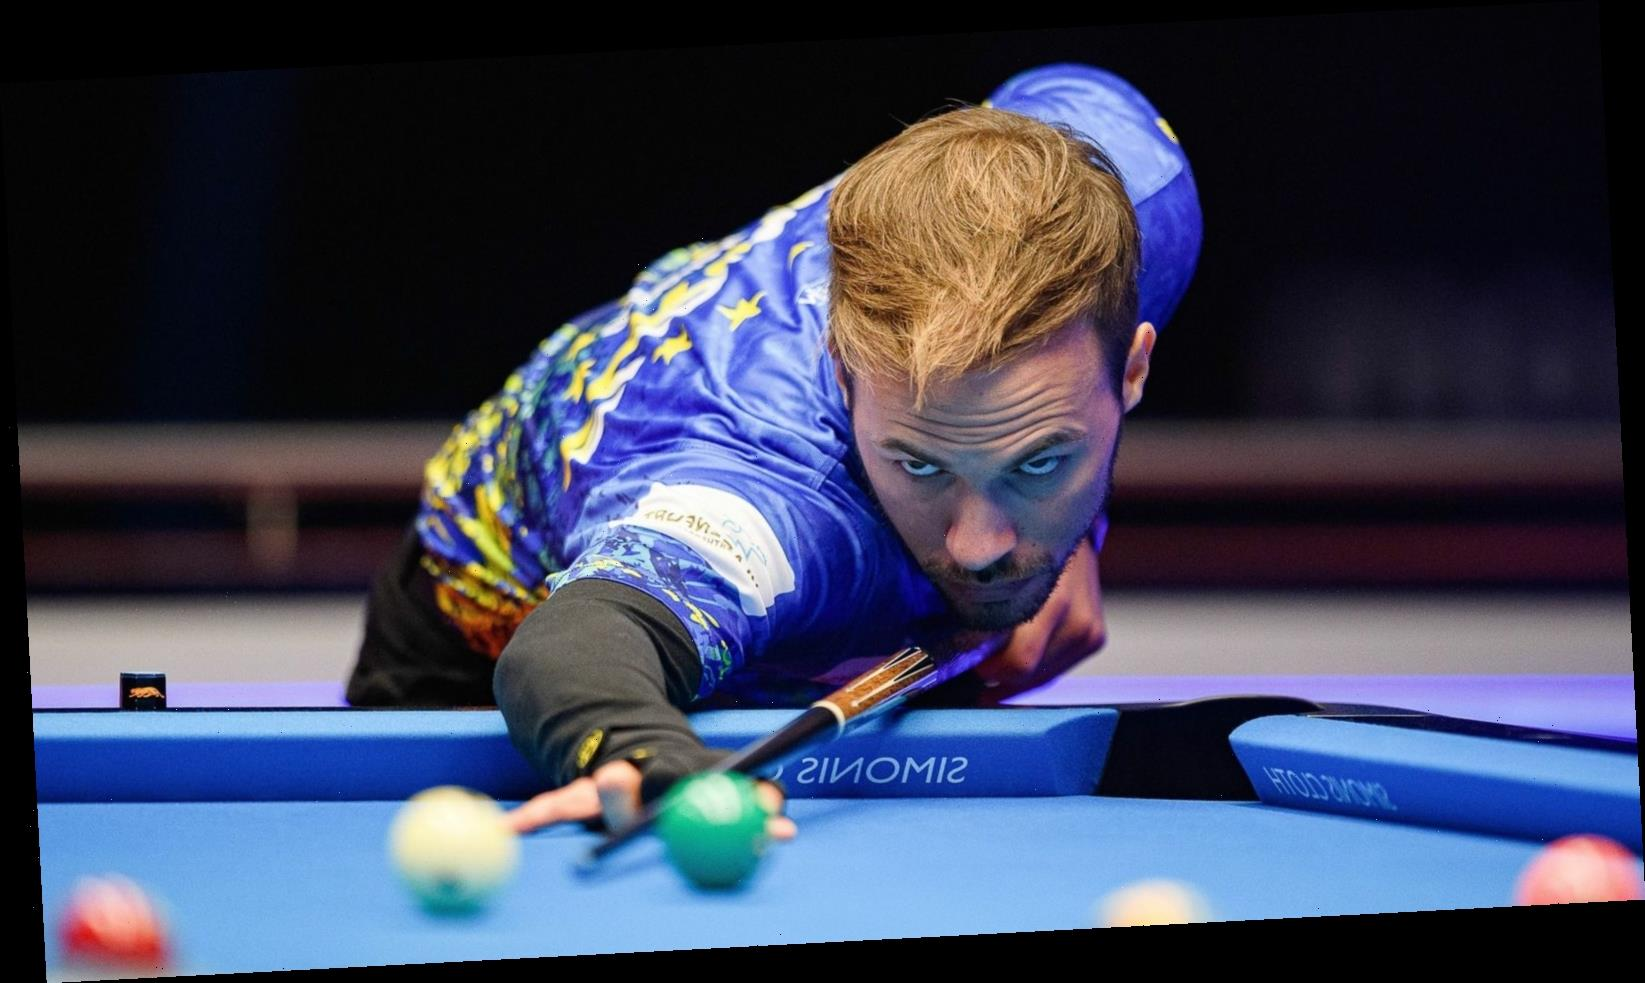 Mosconi Cup: Europe leading USA 3-2 after opening night's play in Coventry